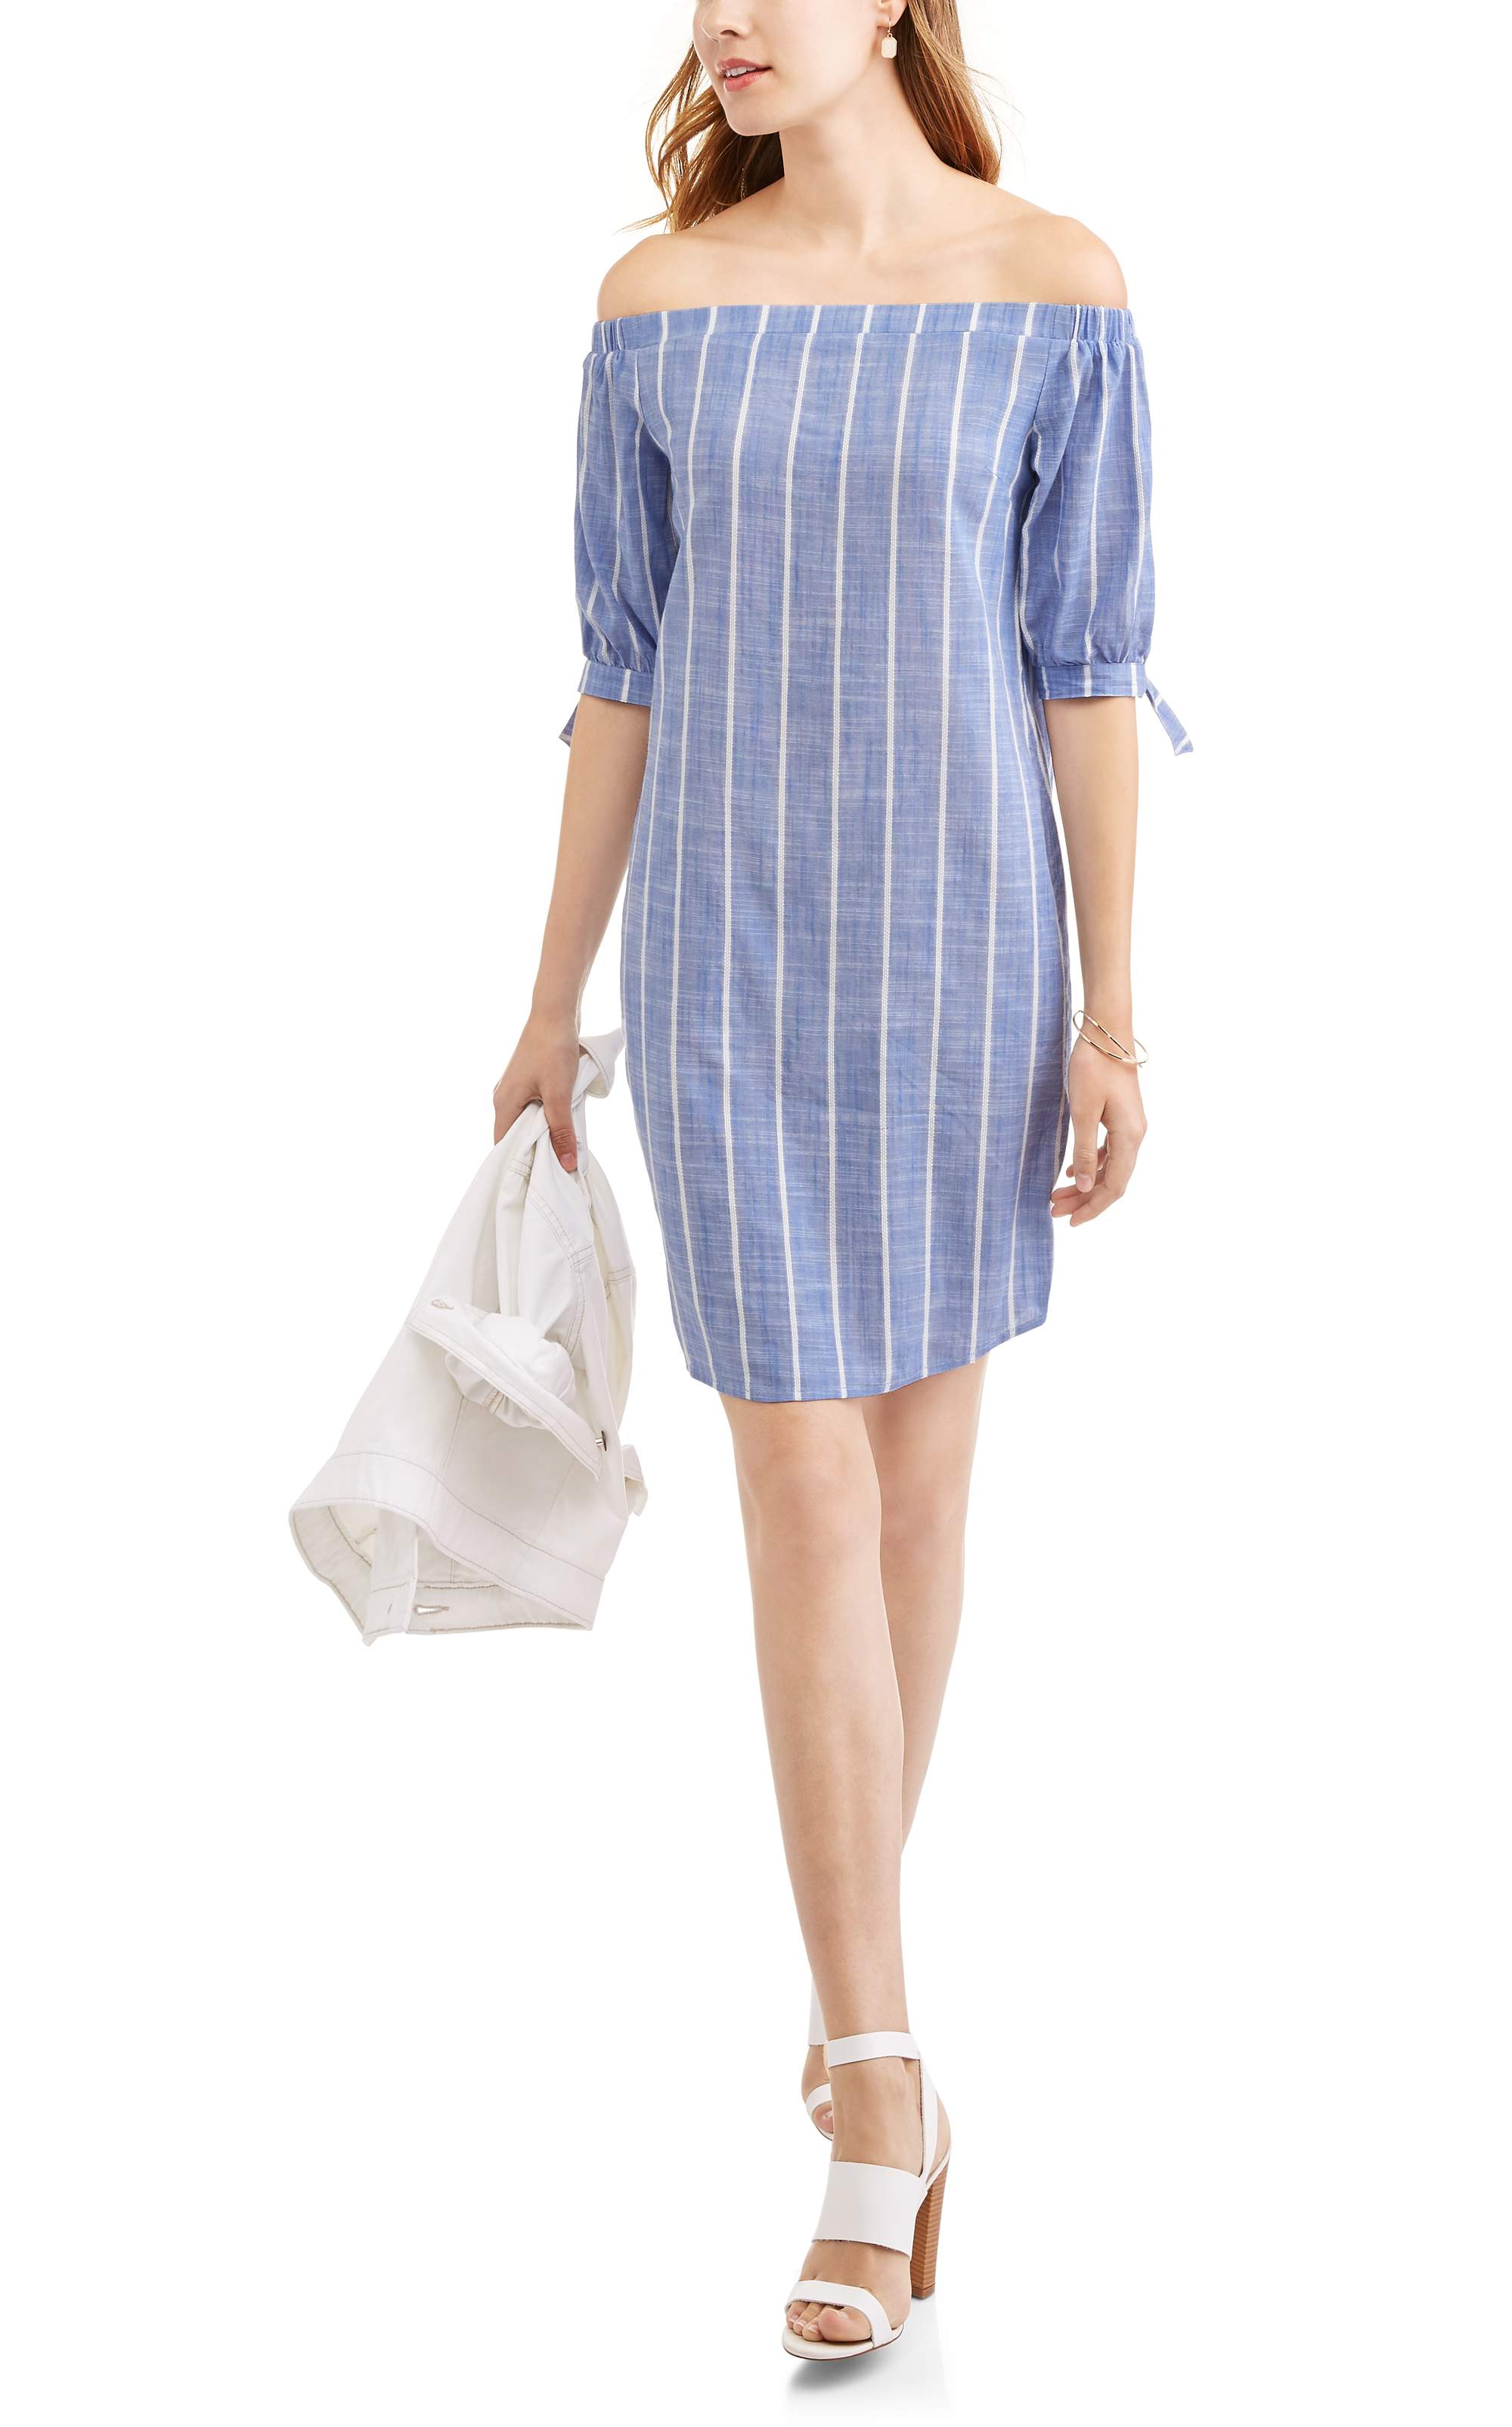 Whoa, Wait Women's Off the Shoulder Dress with Tie Sleeves